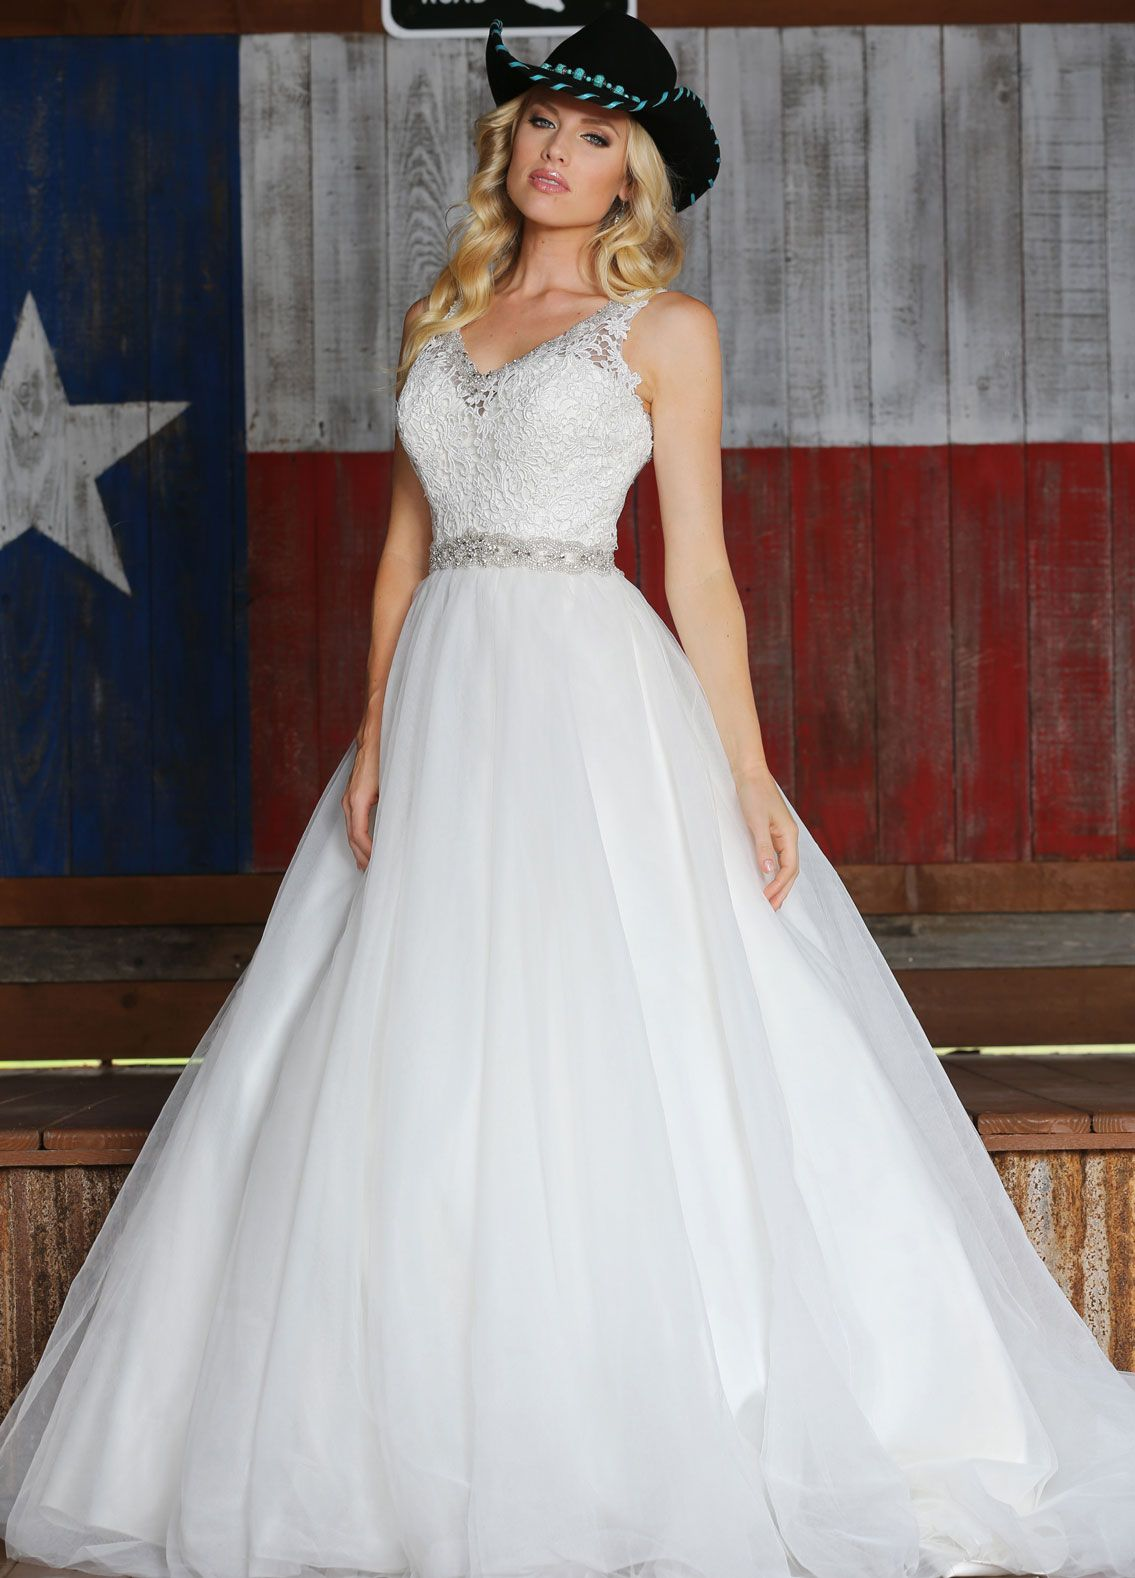 Wedding dresses perfect for you on your special day da vinci